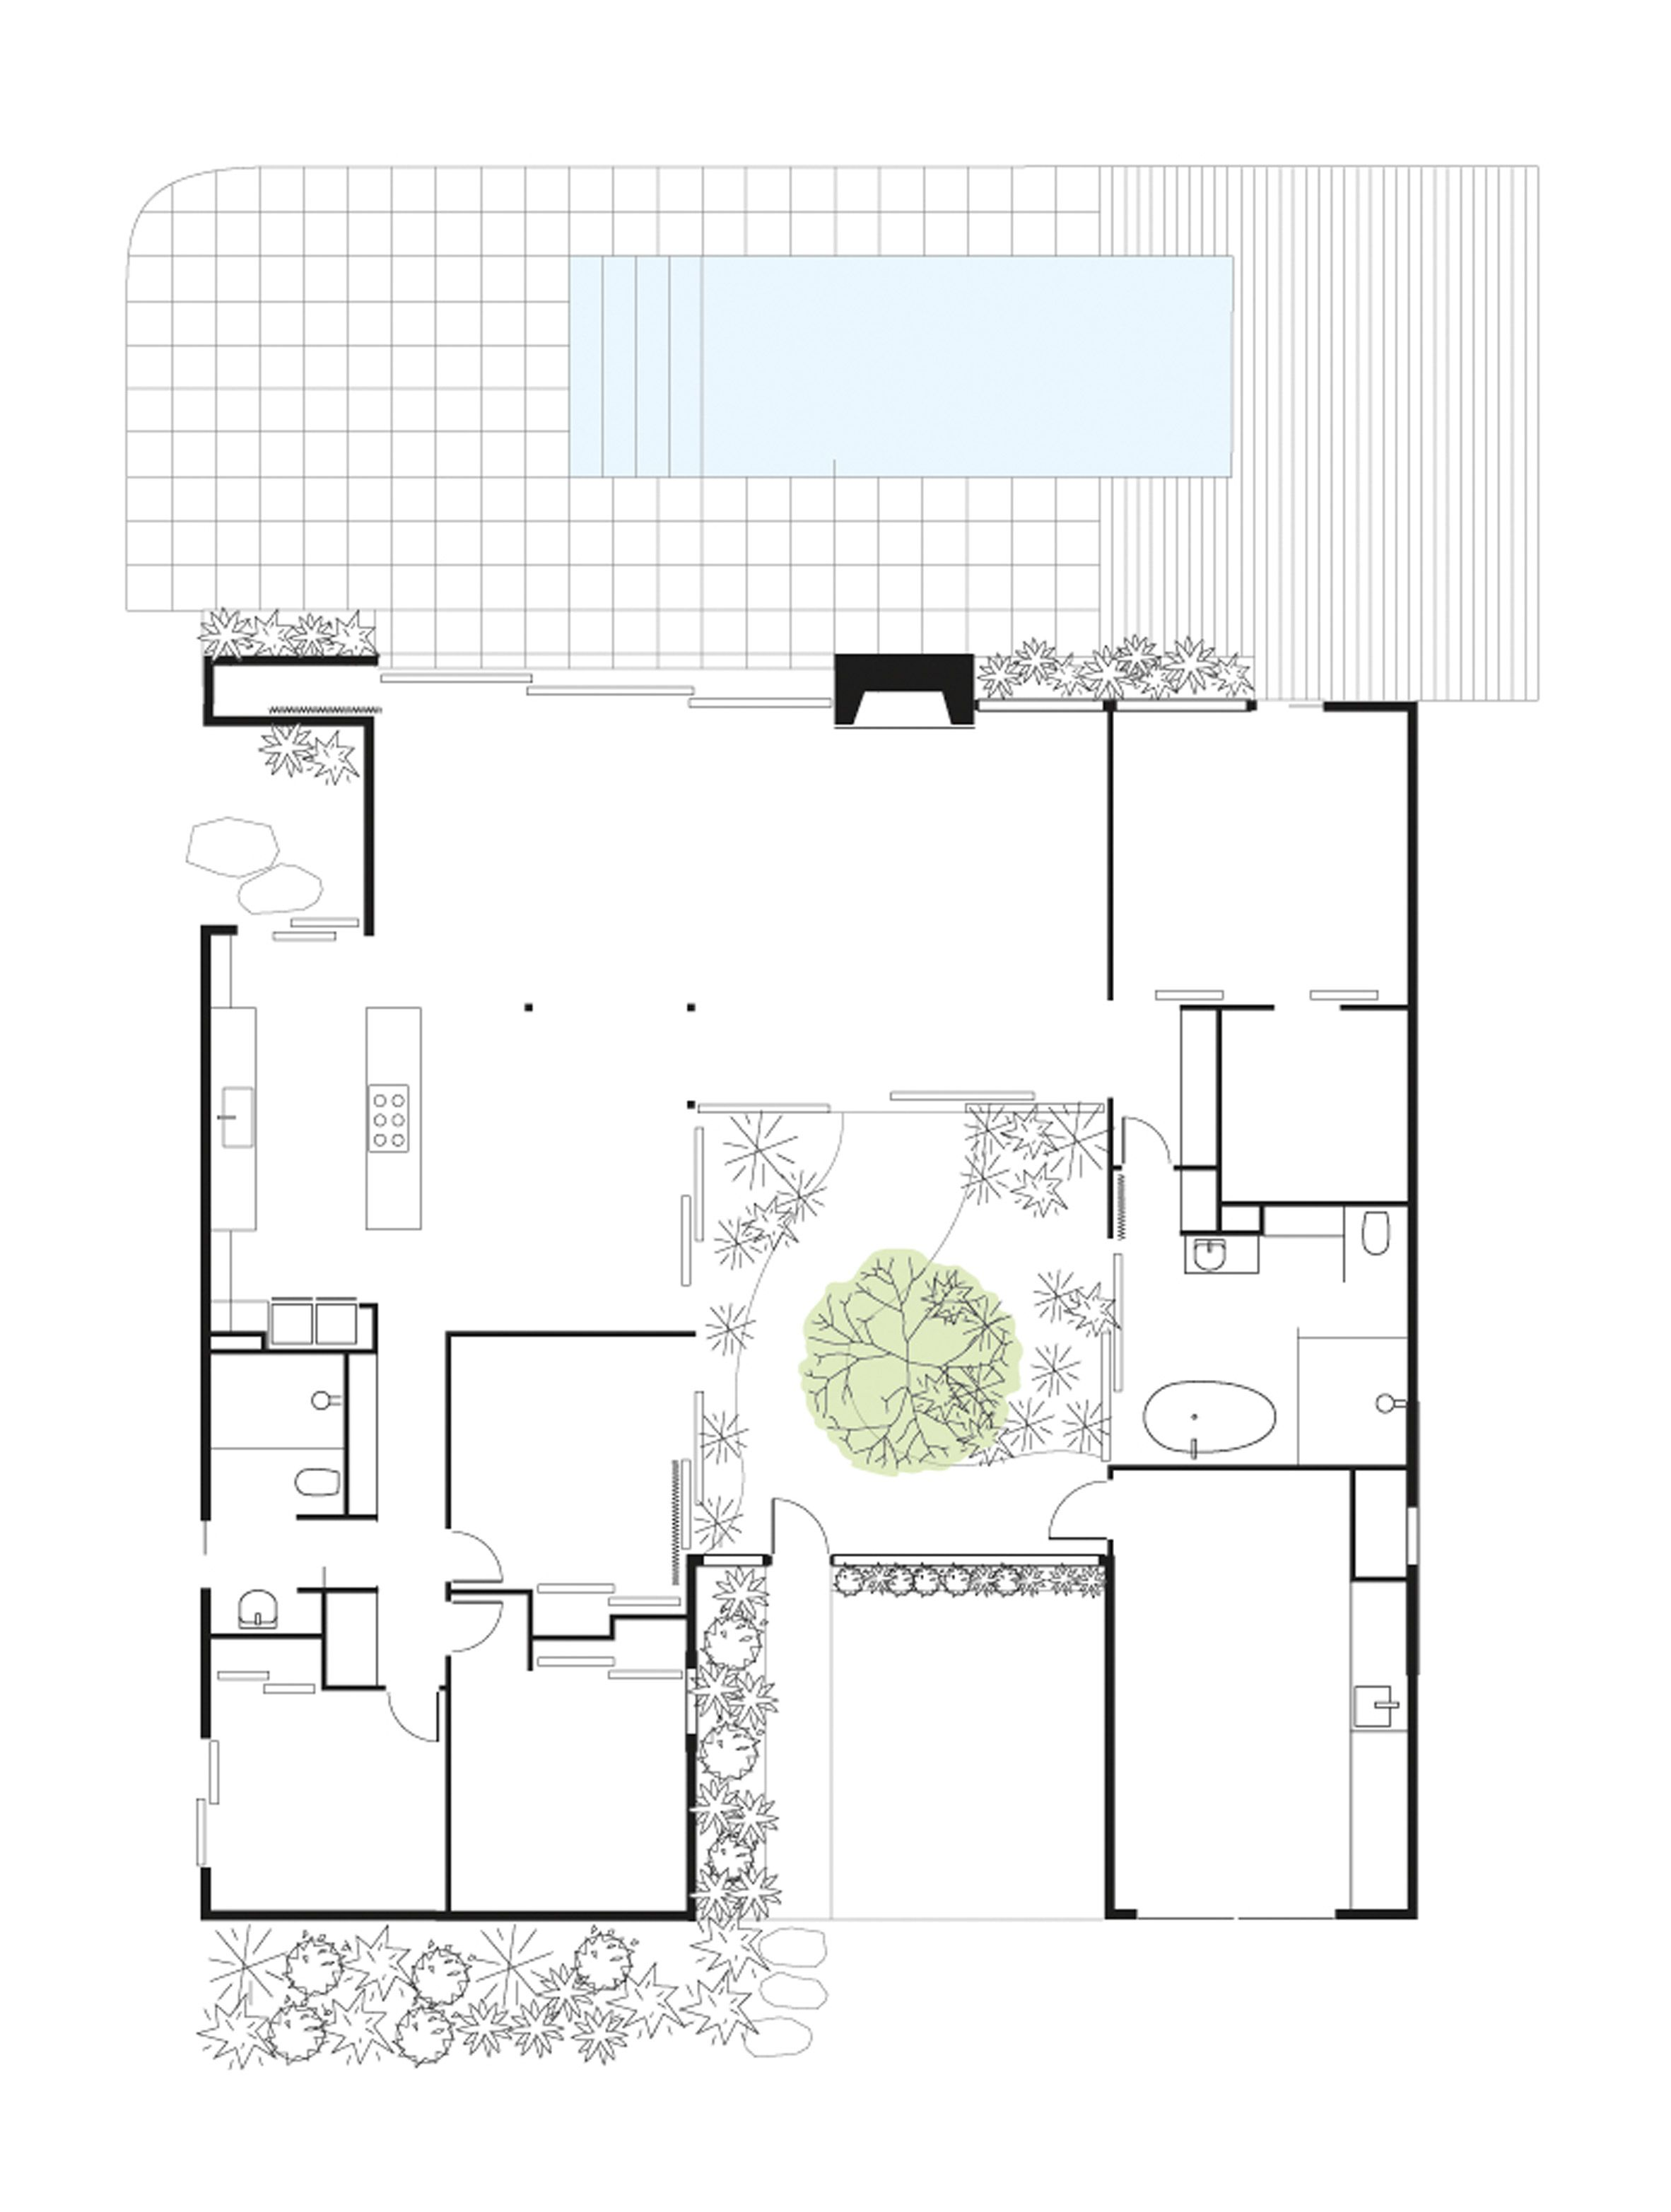 White Twin Gable House By Ryan Leidner Architecture Is A Remodeled Eichler In 2020 Gable House Eichler Homes Eichler House Plans